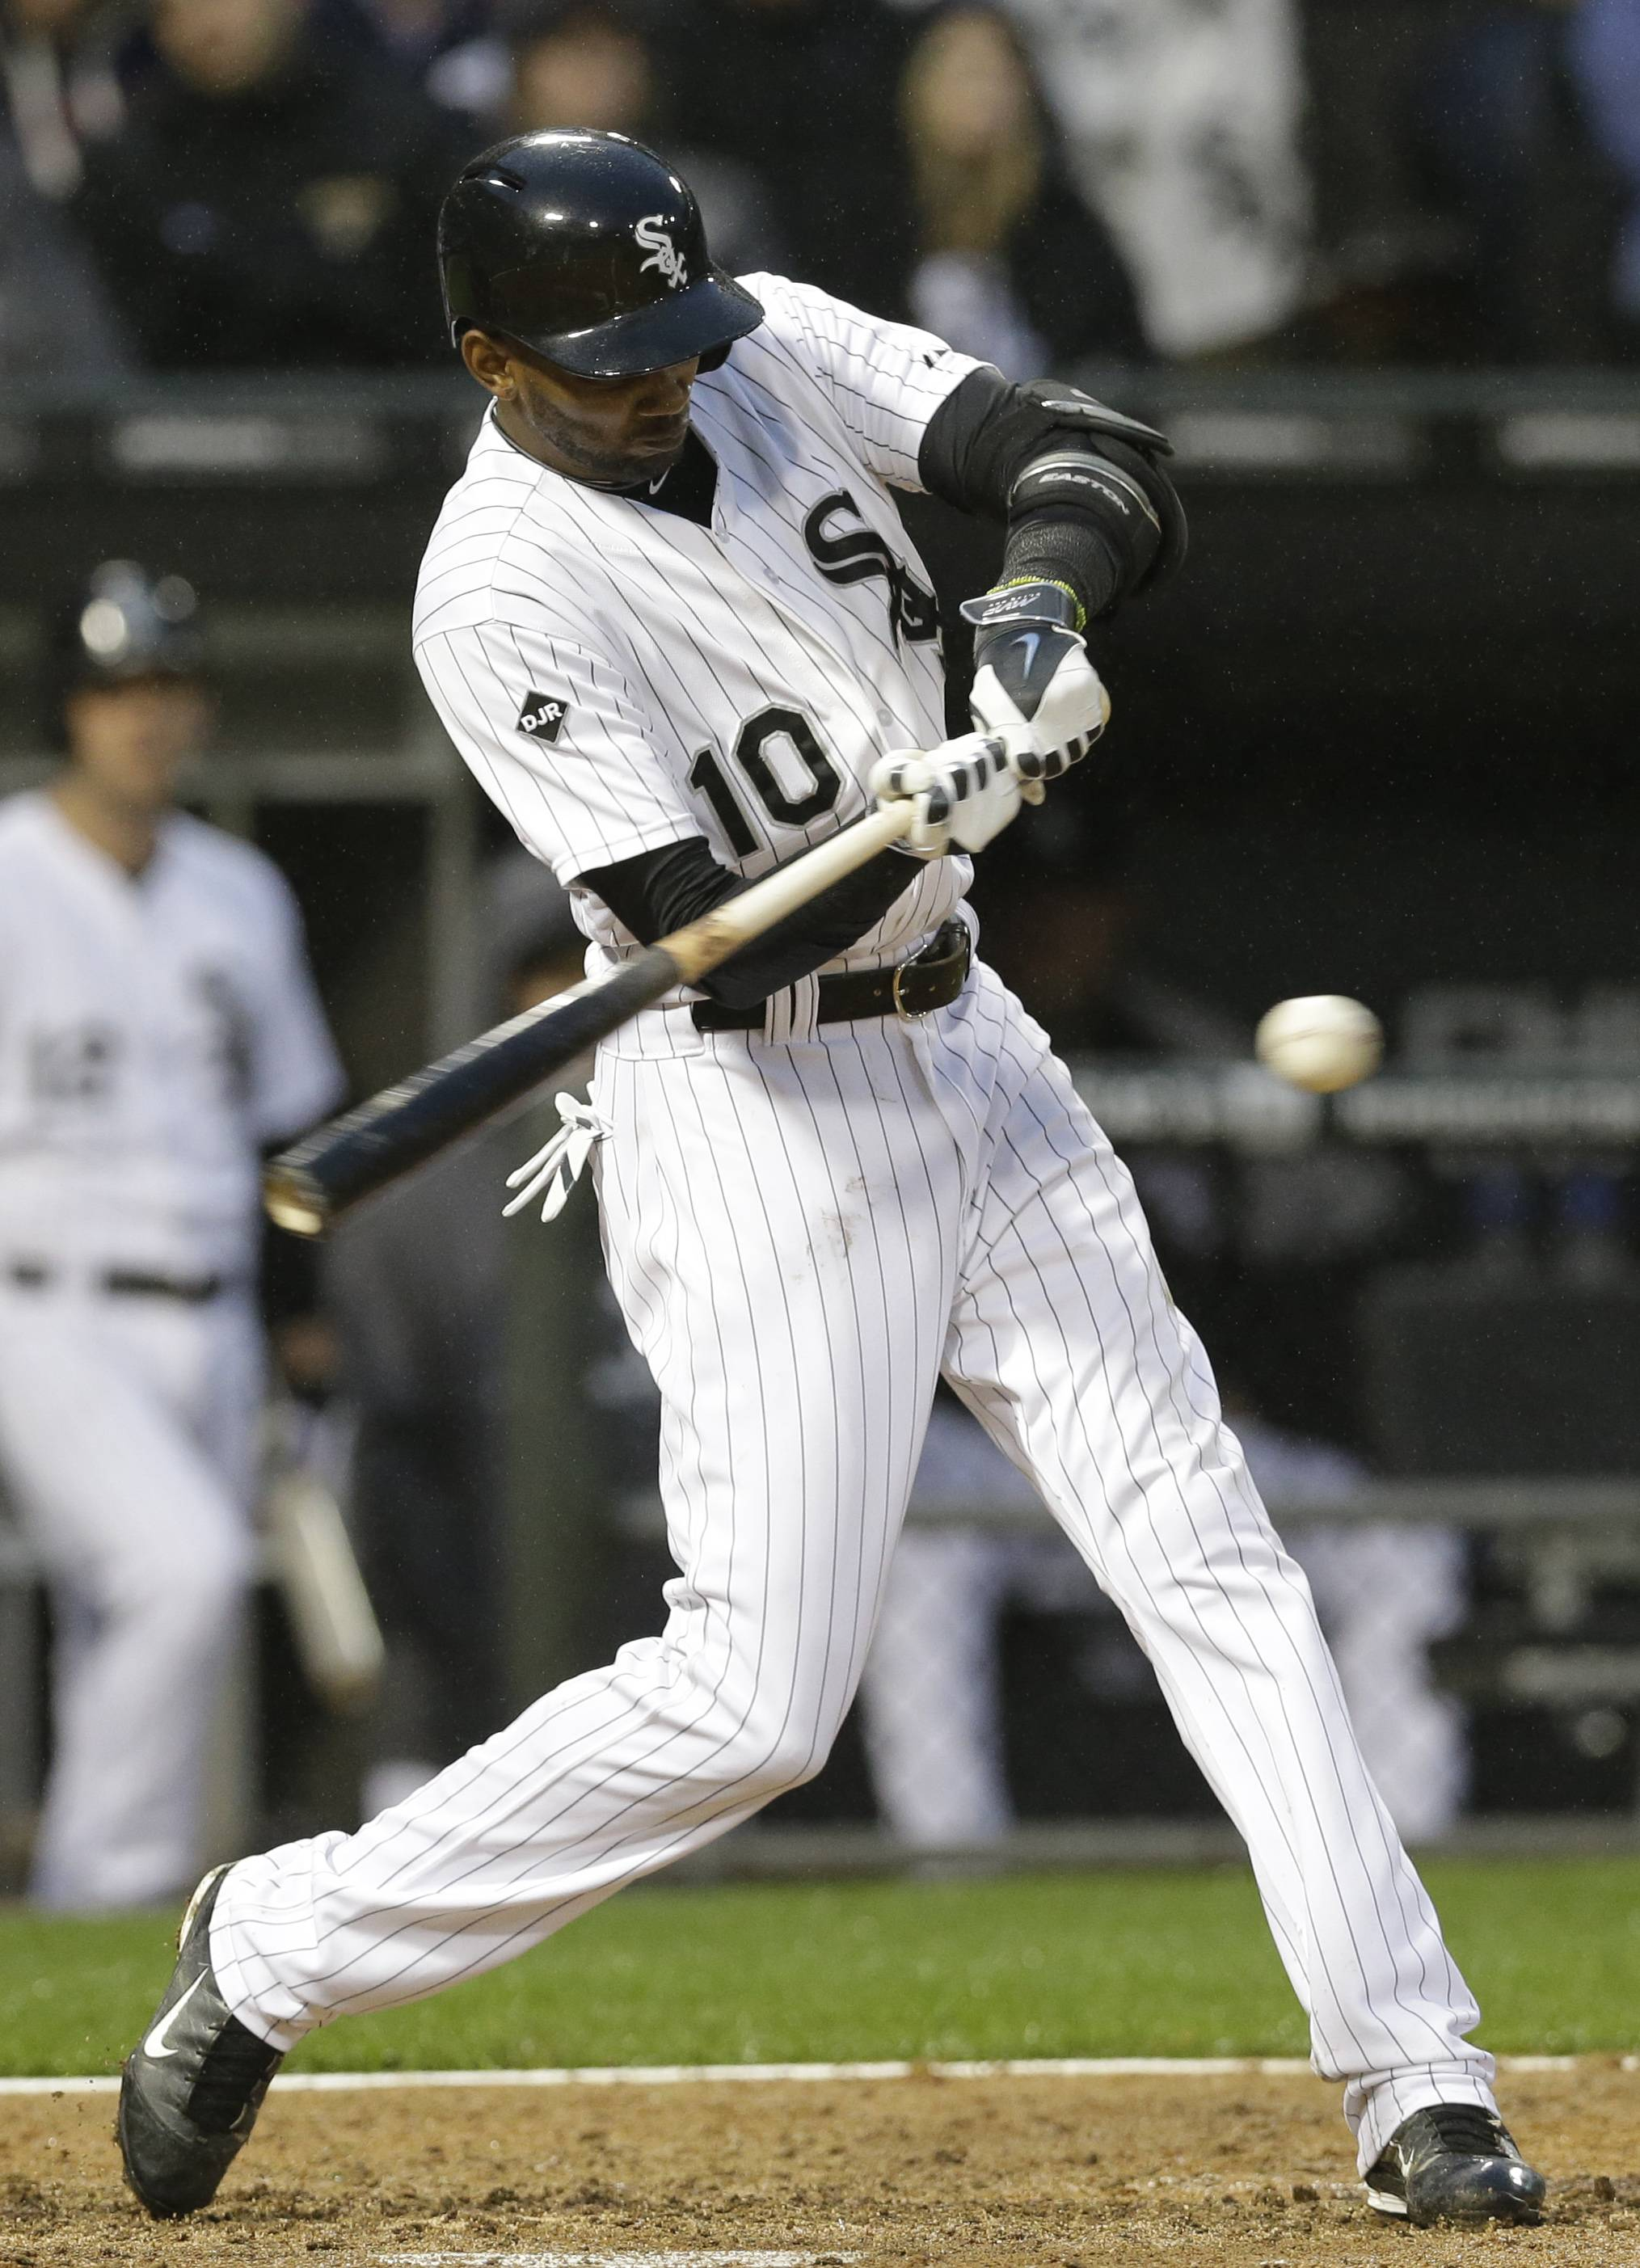 Alexei Ramirez hits a two-run single against the Los Angeles Angels during the fourth inning of a baseball game in Chicago on Wednesday, July 2, 2014.